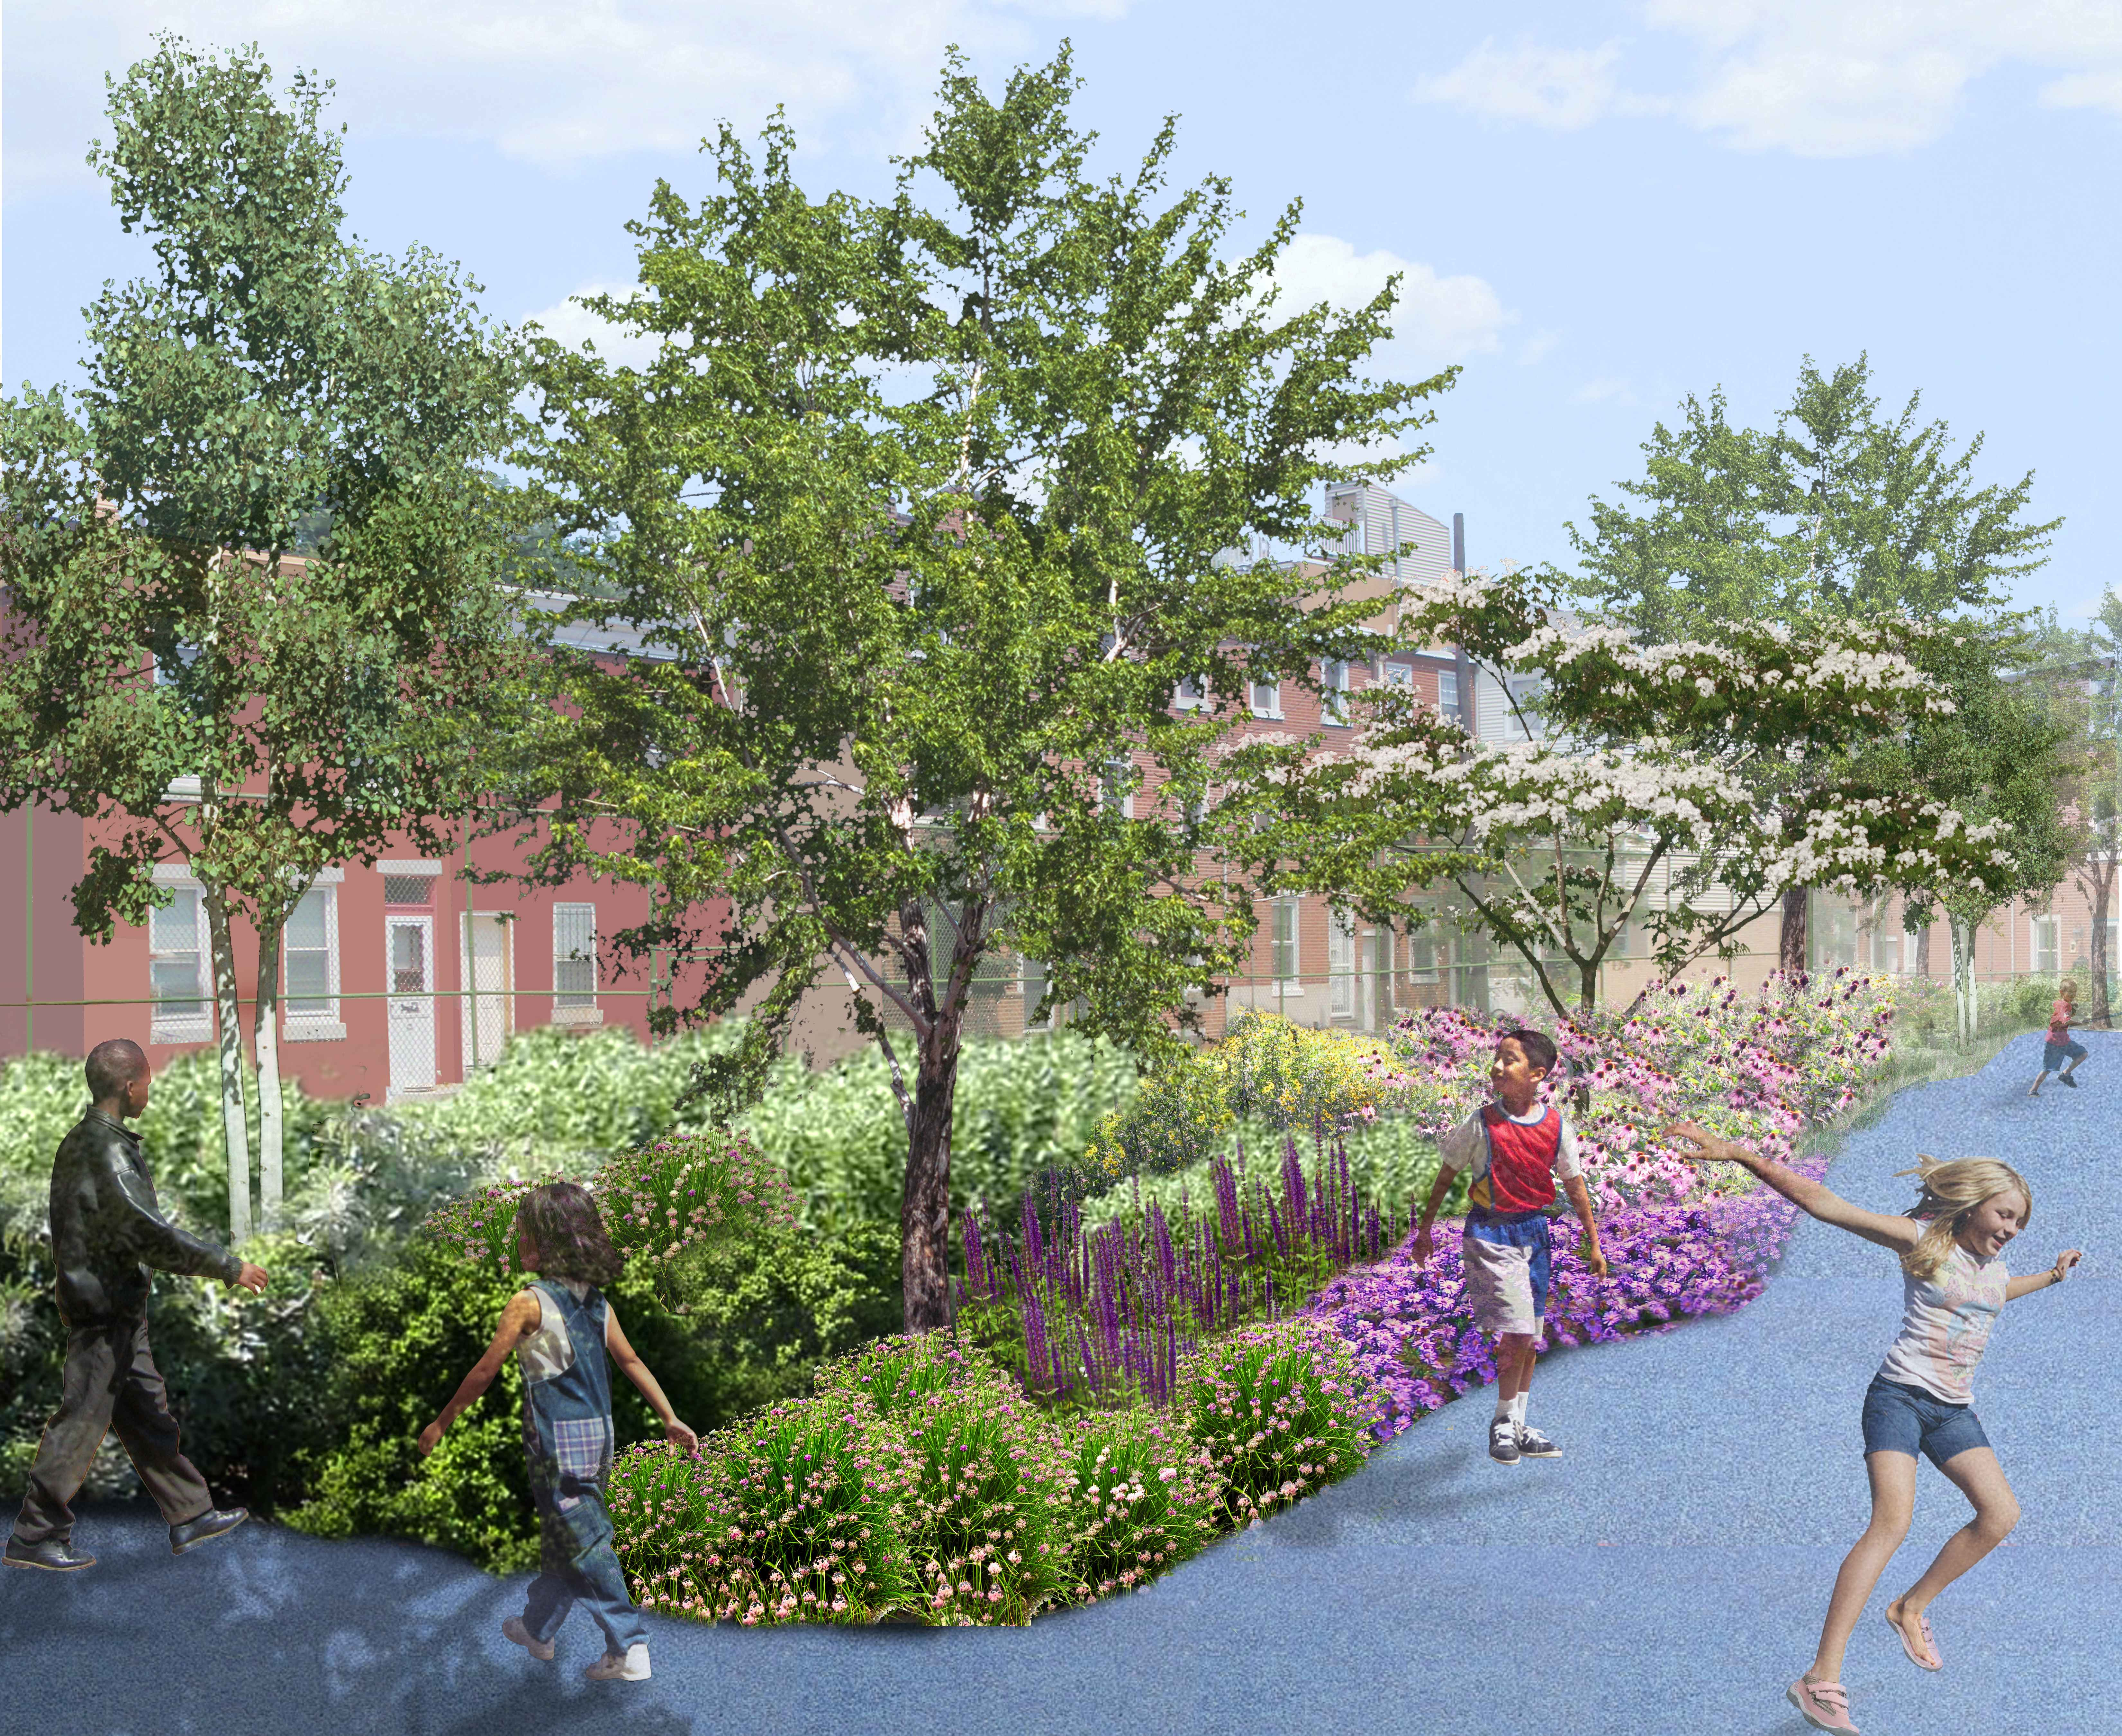 Three schools will receive the full PWD green stormwater management makeover, Rendering by Rachel Ahern for the Philadelphia Water Department